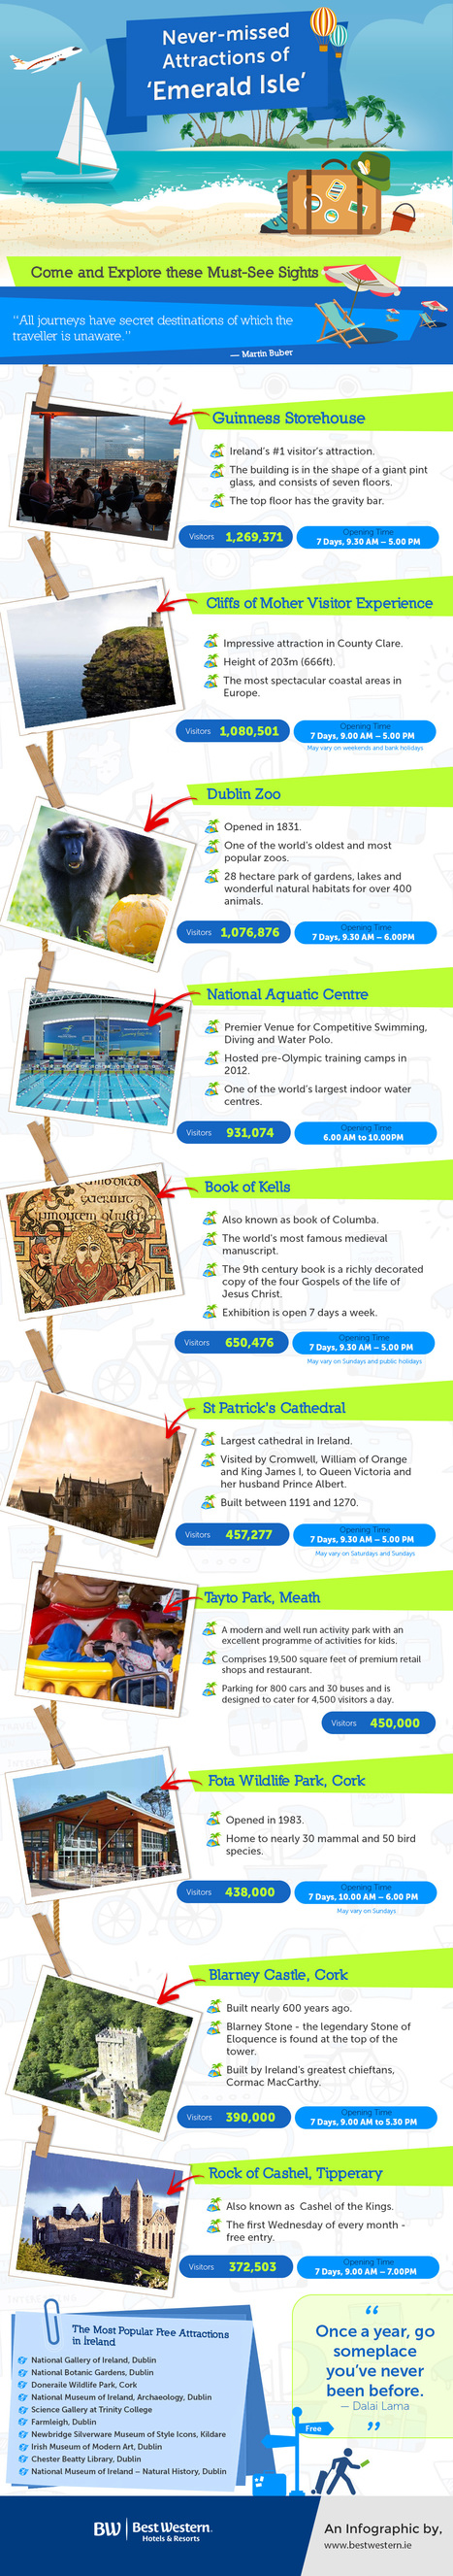 Famous Fascinating Attractions in Ireland | Infographic Collection | Scoop.it